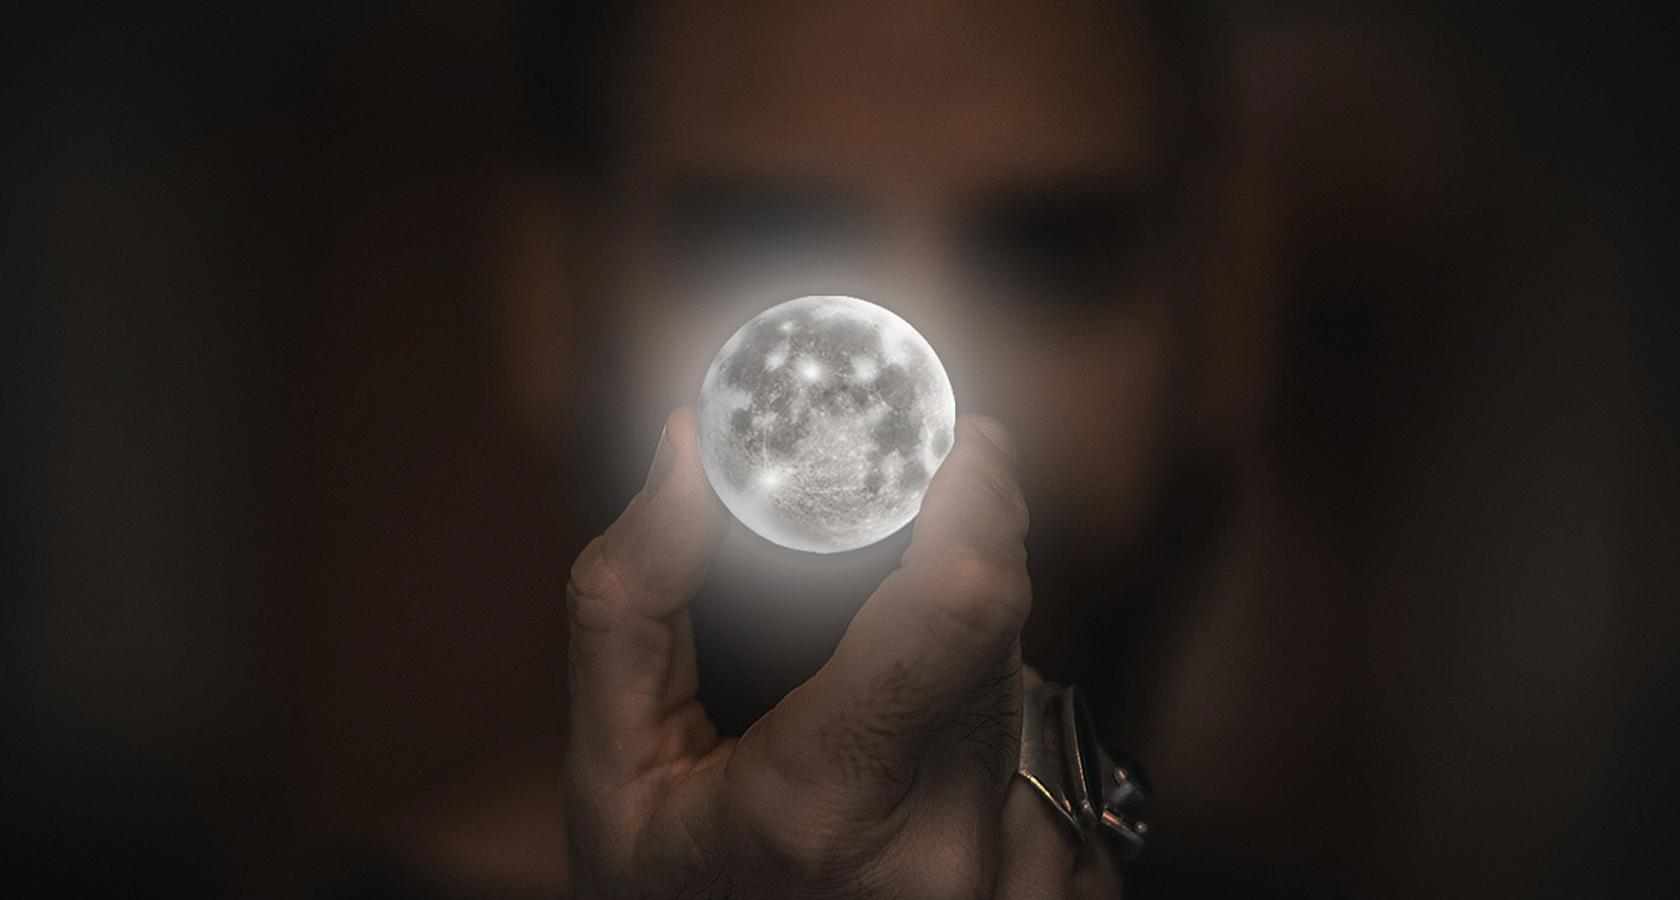 Man holding a non-realistic moon